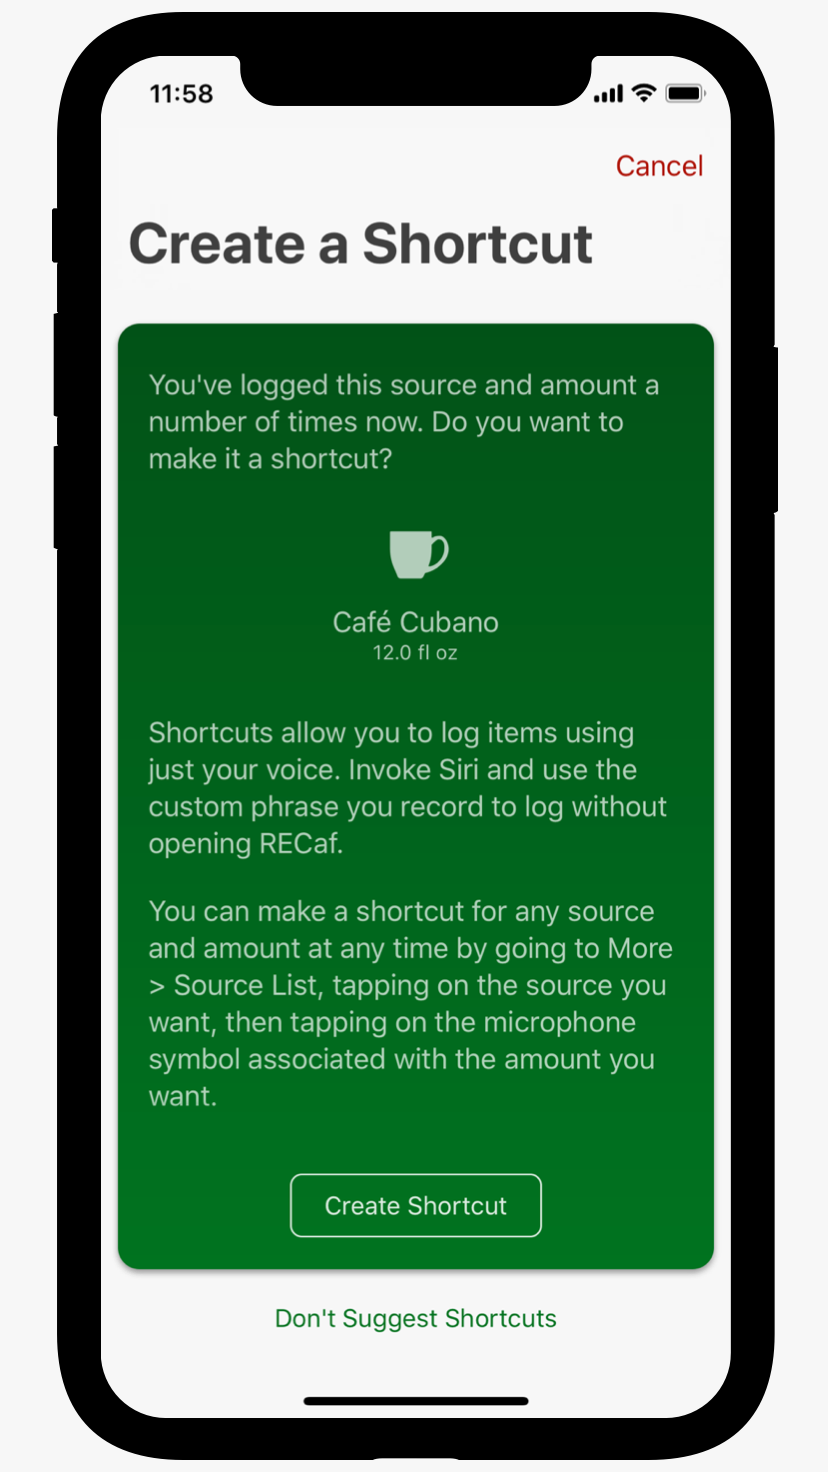 shortcutPrompt@2x